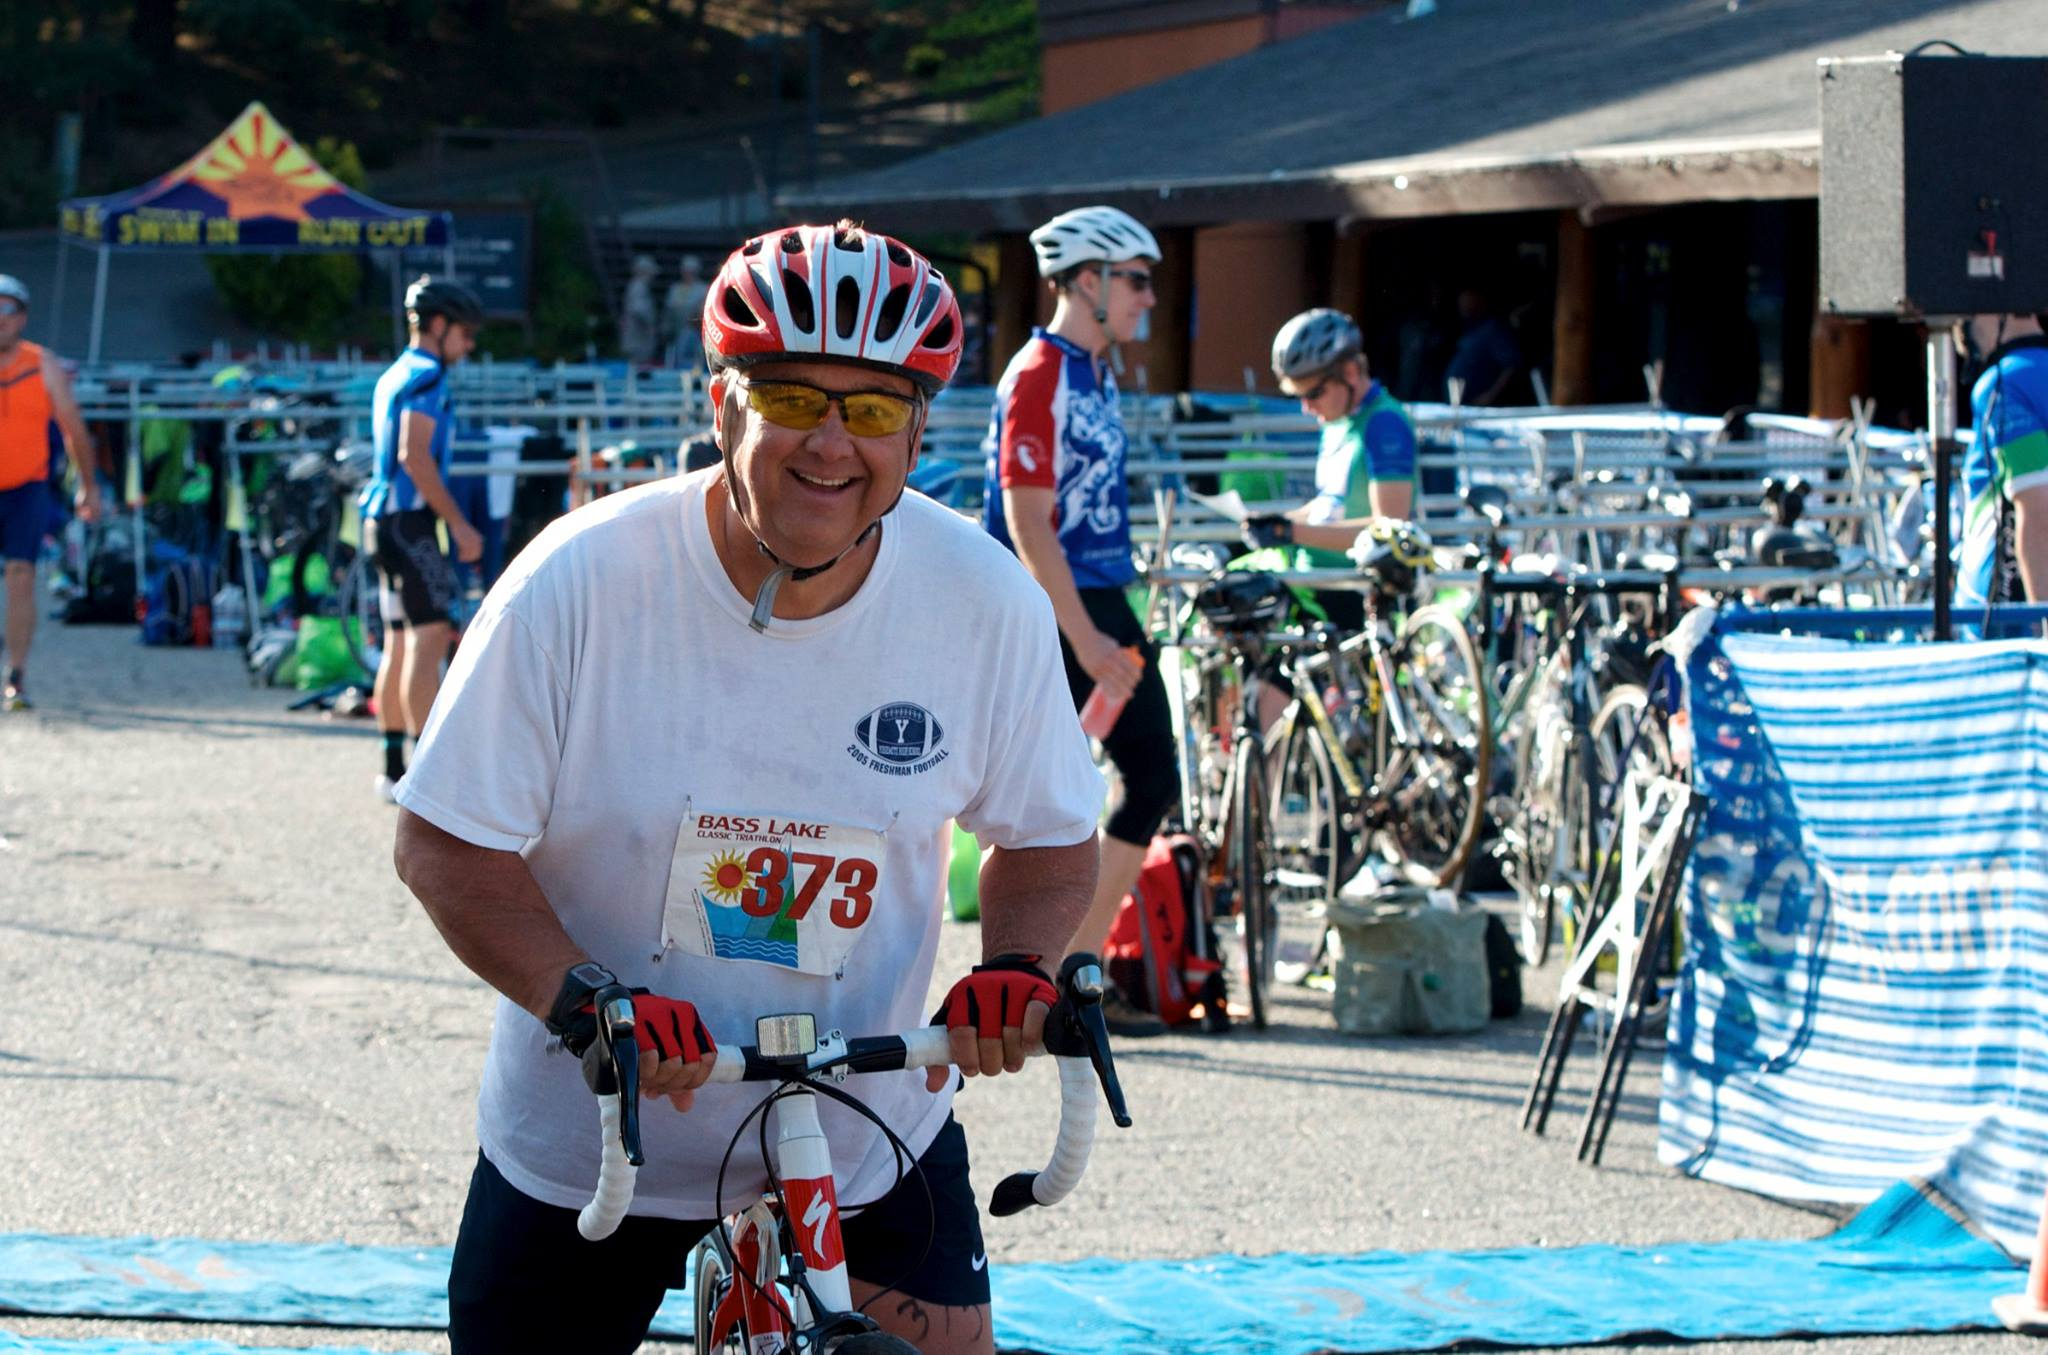 Oakhurst resident and teacher Stan Lawrence on bike at the 2014 Bass Lake Classic Triathlon - photo by Monique Wales